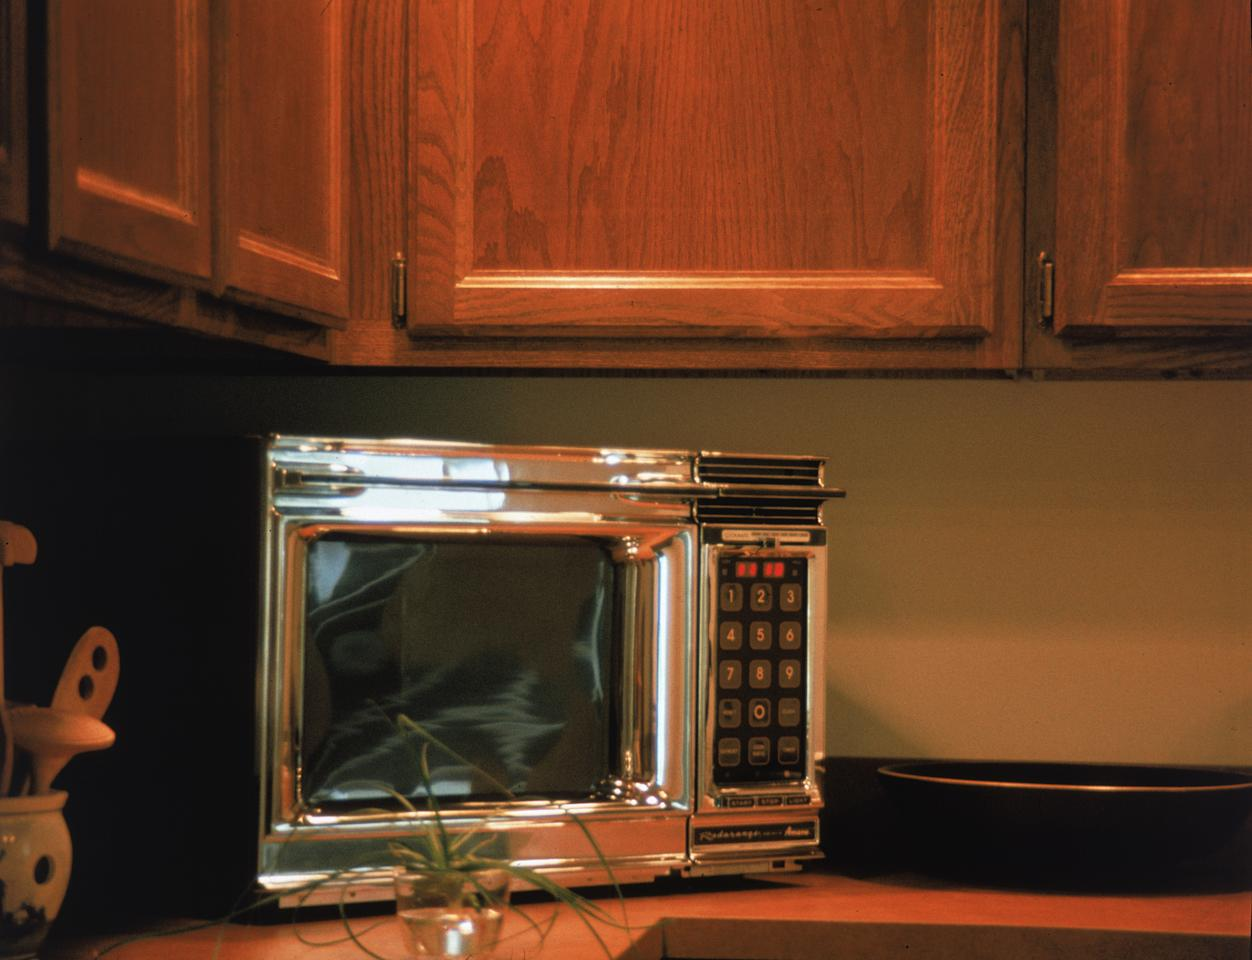 <p>The microwave was created by Percy Spencer using radar technology from WWII in 1946 and became hugely popular in the 1980s when the microwave sparked a convenience – the ready meal revolution. (Rex) </p>